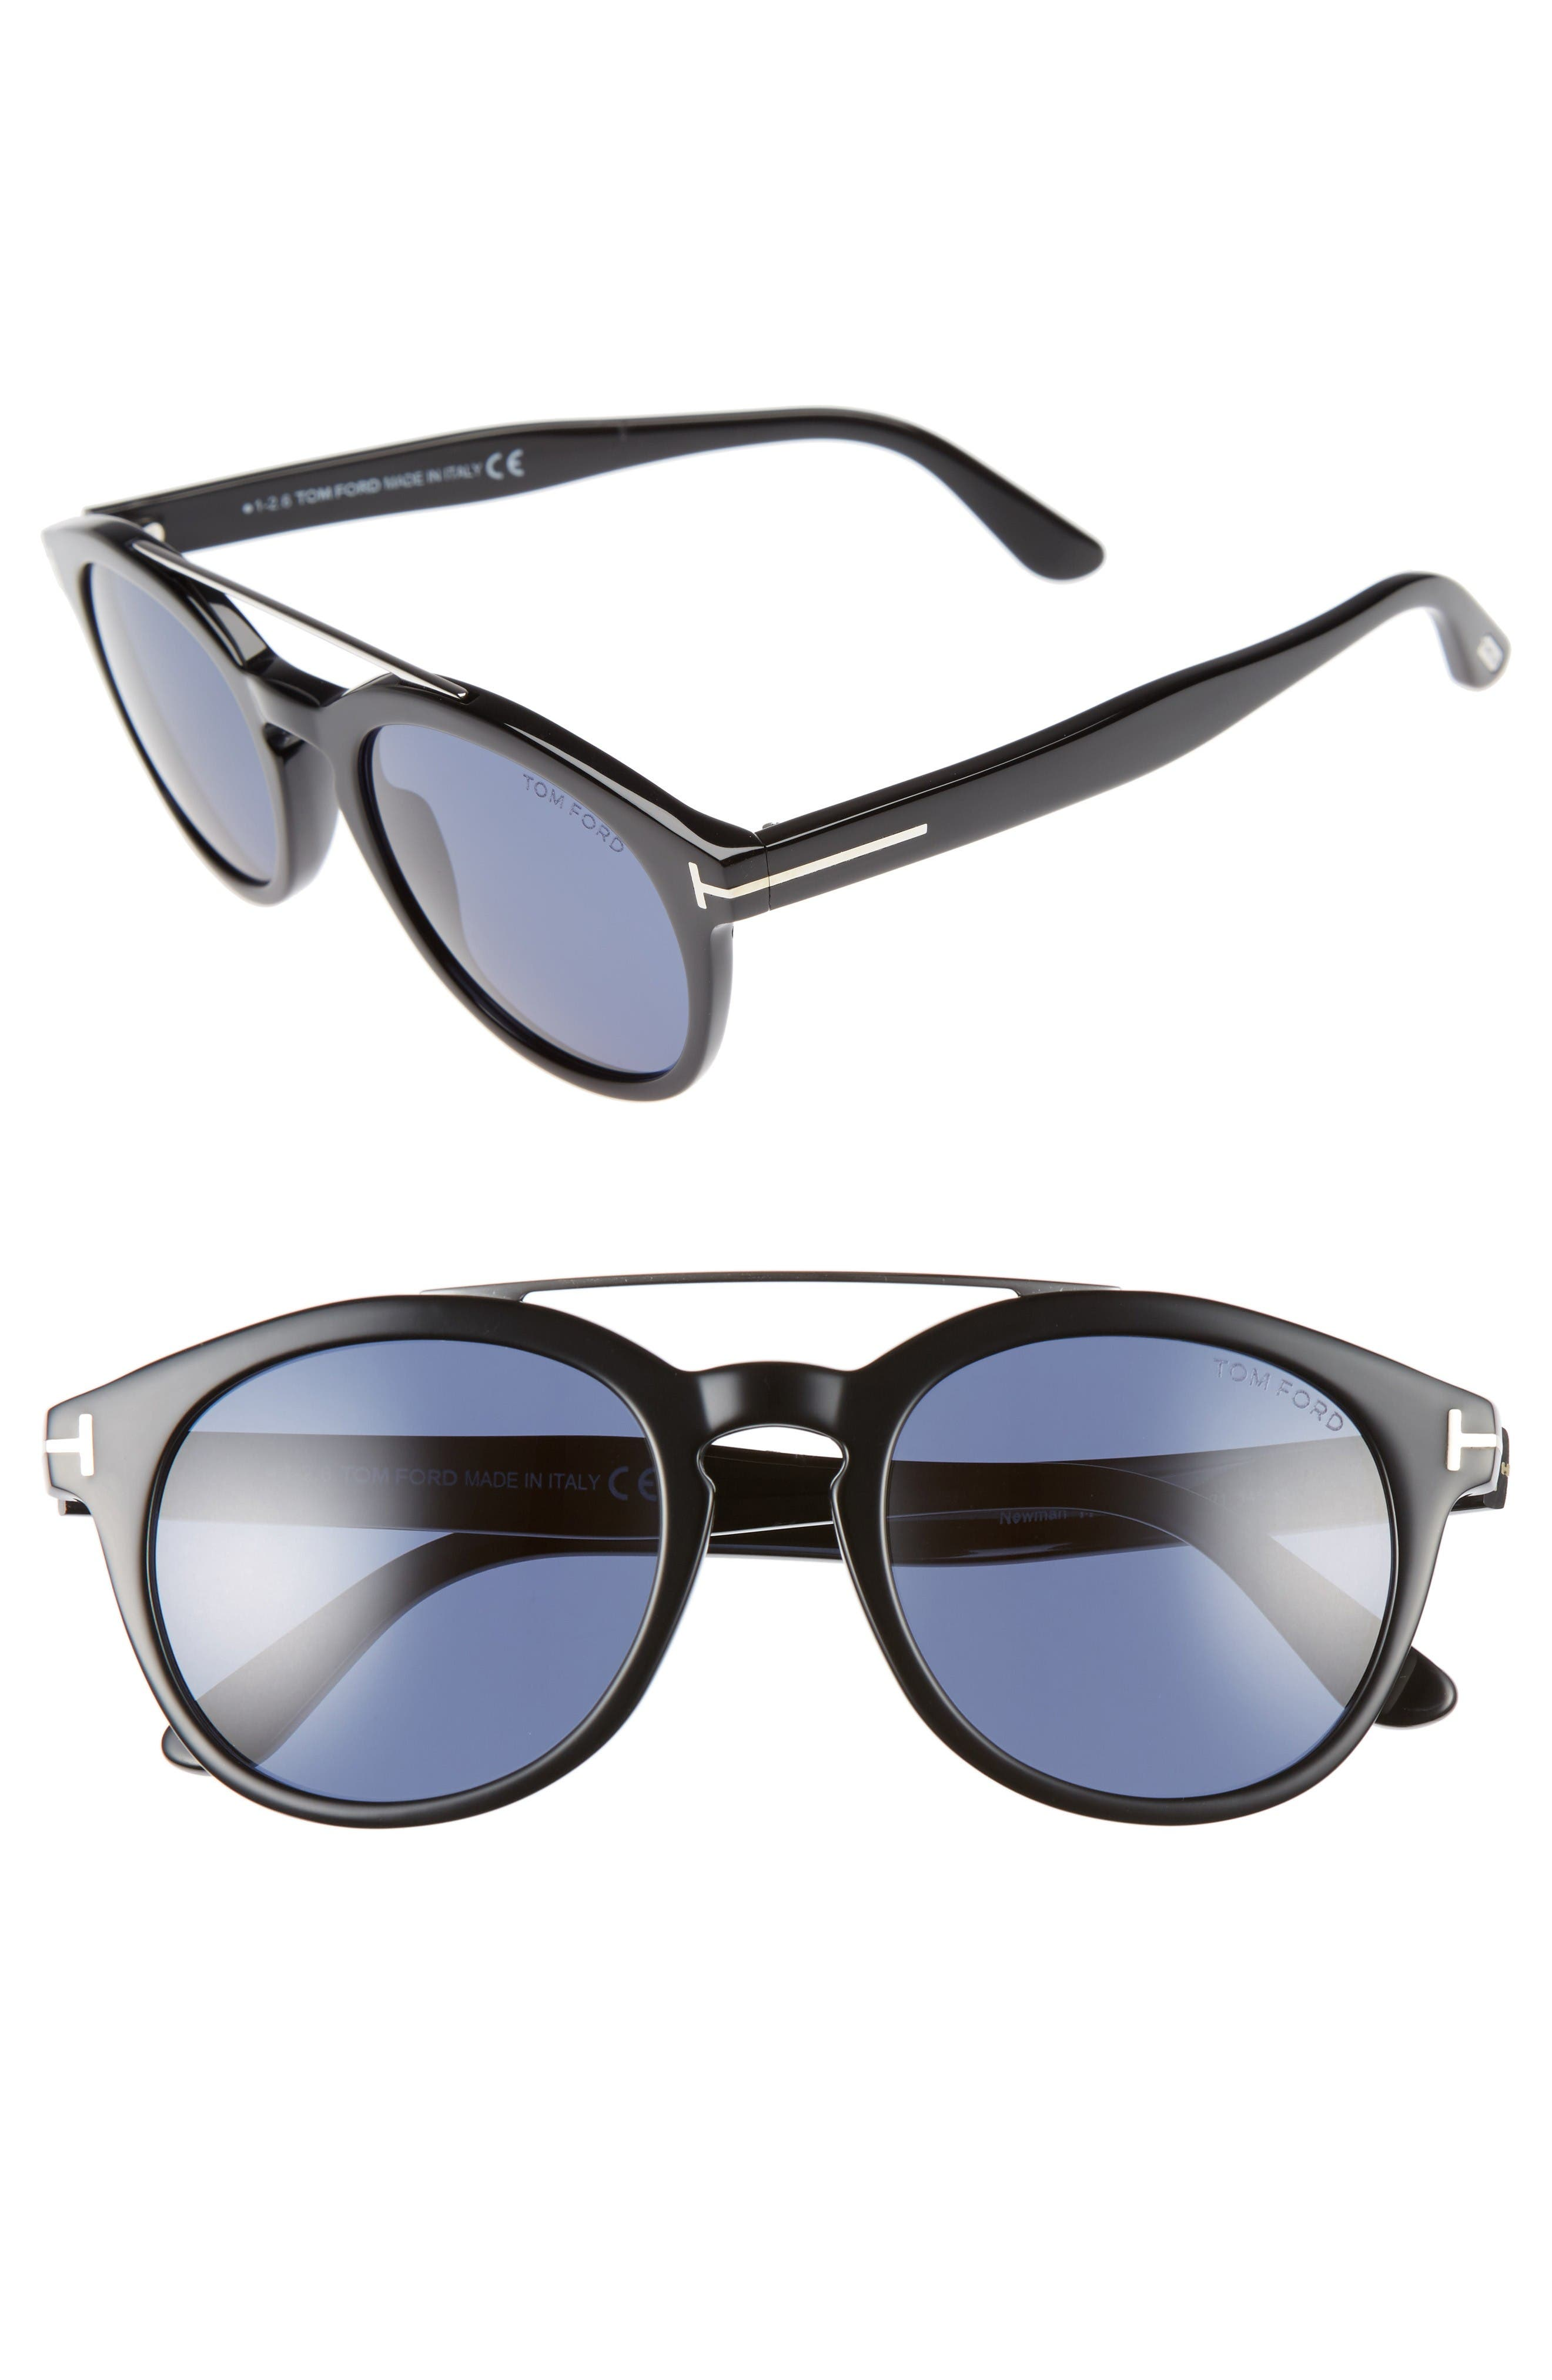 Main Image - Tom Ford Newman 53mm Polarized Sunglasses